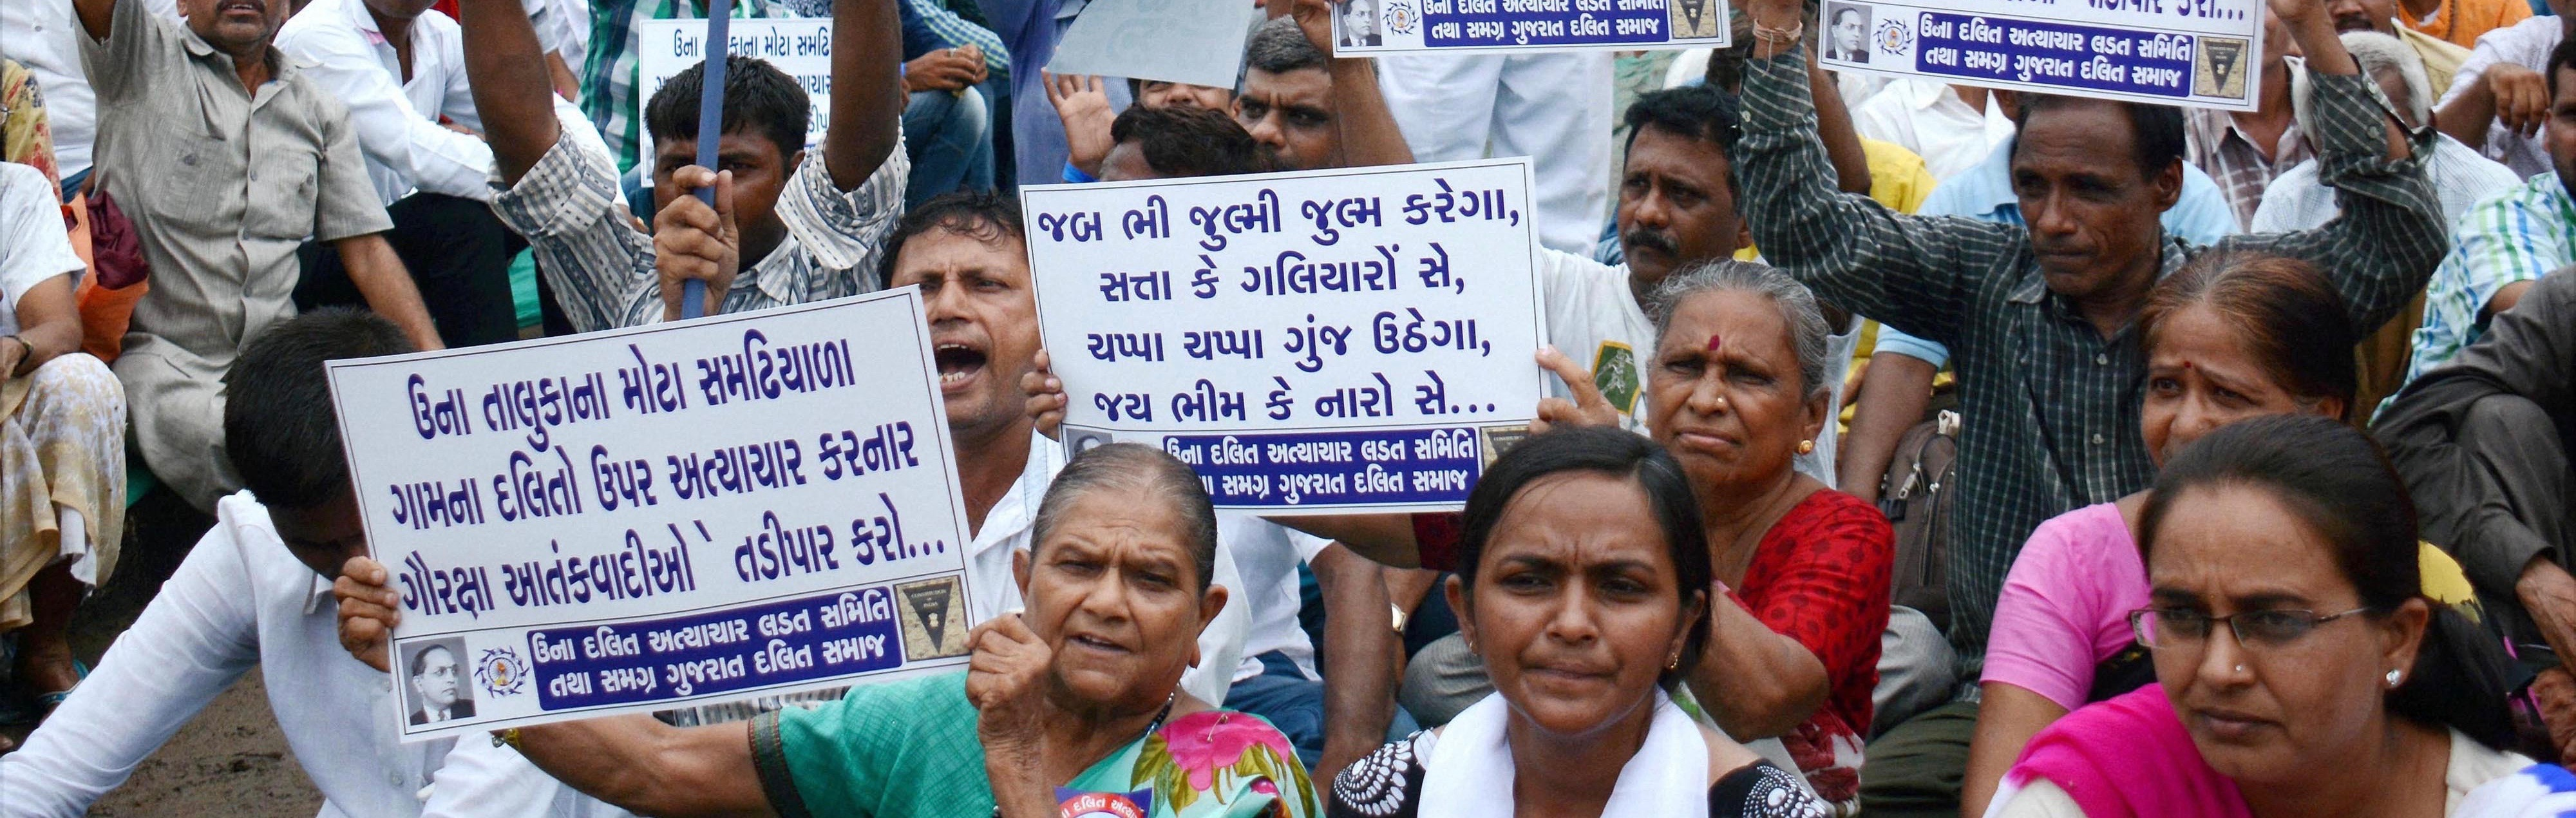 Dalit Protests in Gujarat: Una Protester Dies; Community Holds Anti-BJP Rally